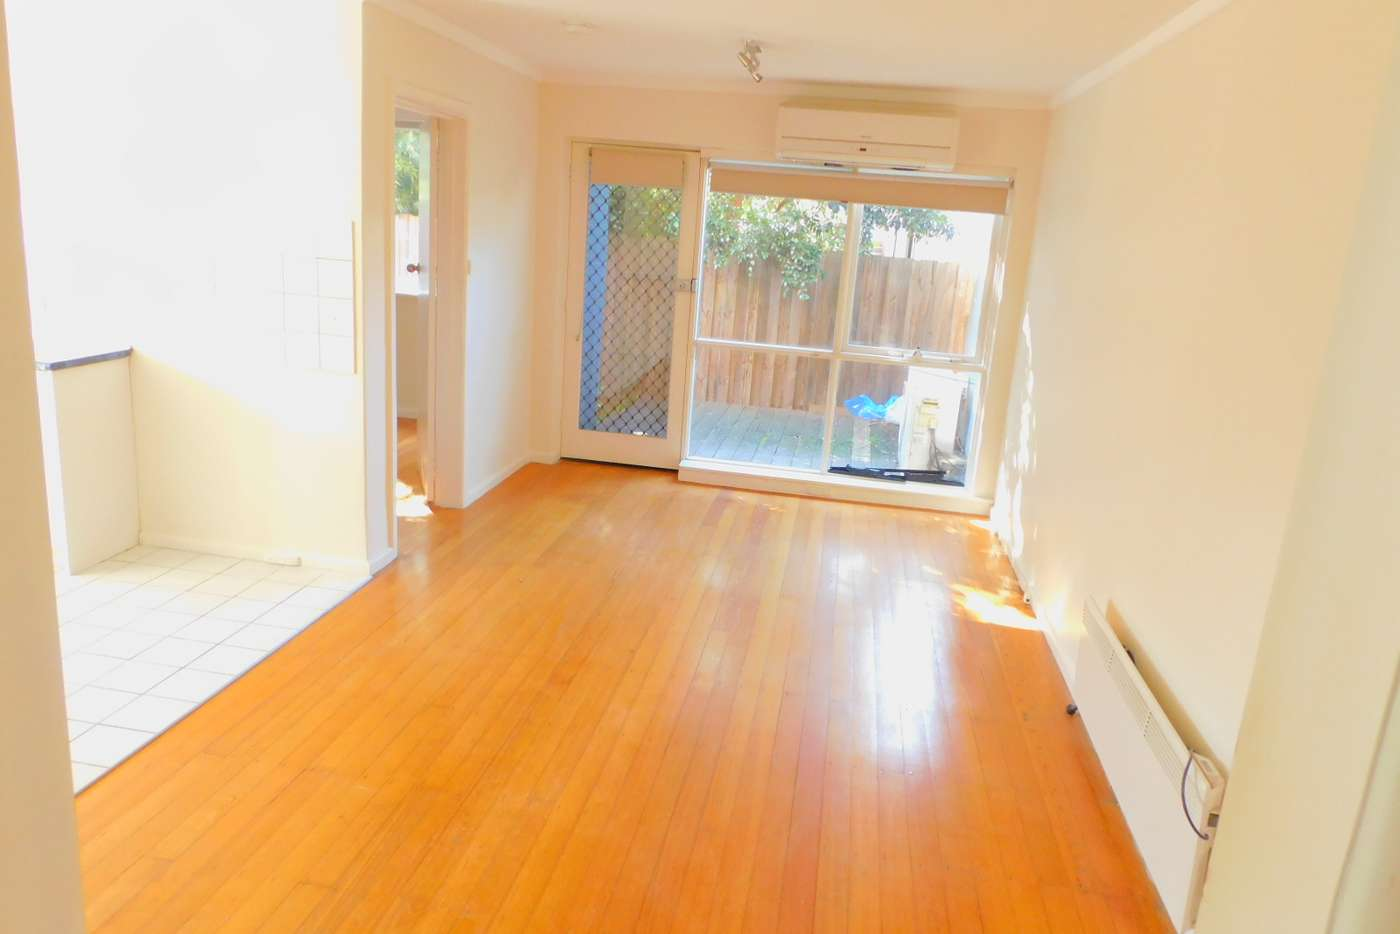 Main view of Homely house listing, 1/564 Pascoe Vale Rd., Oak Park VIC 3046